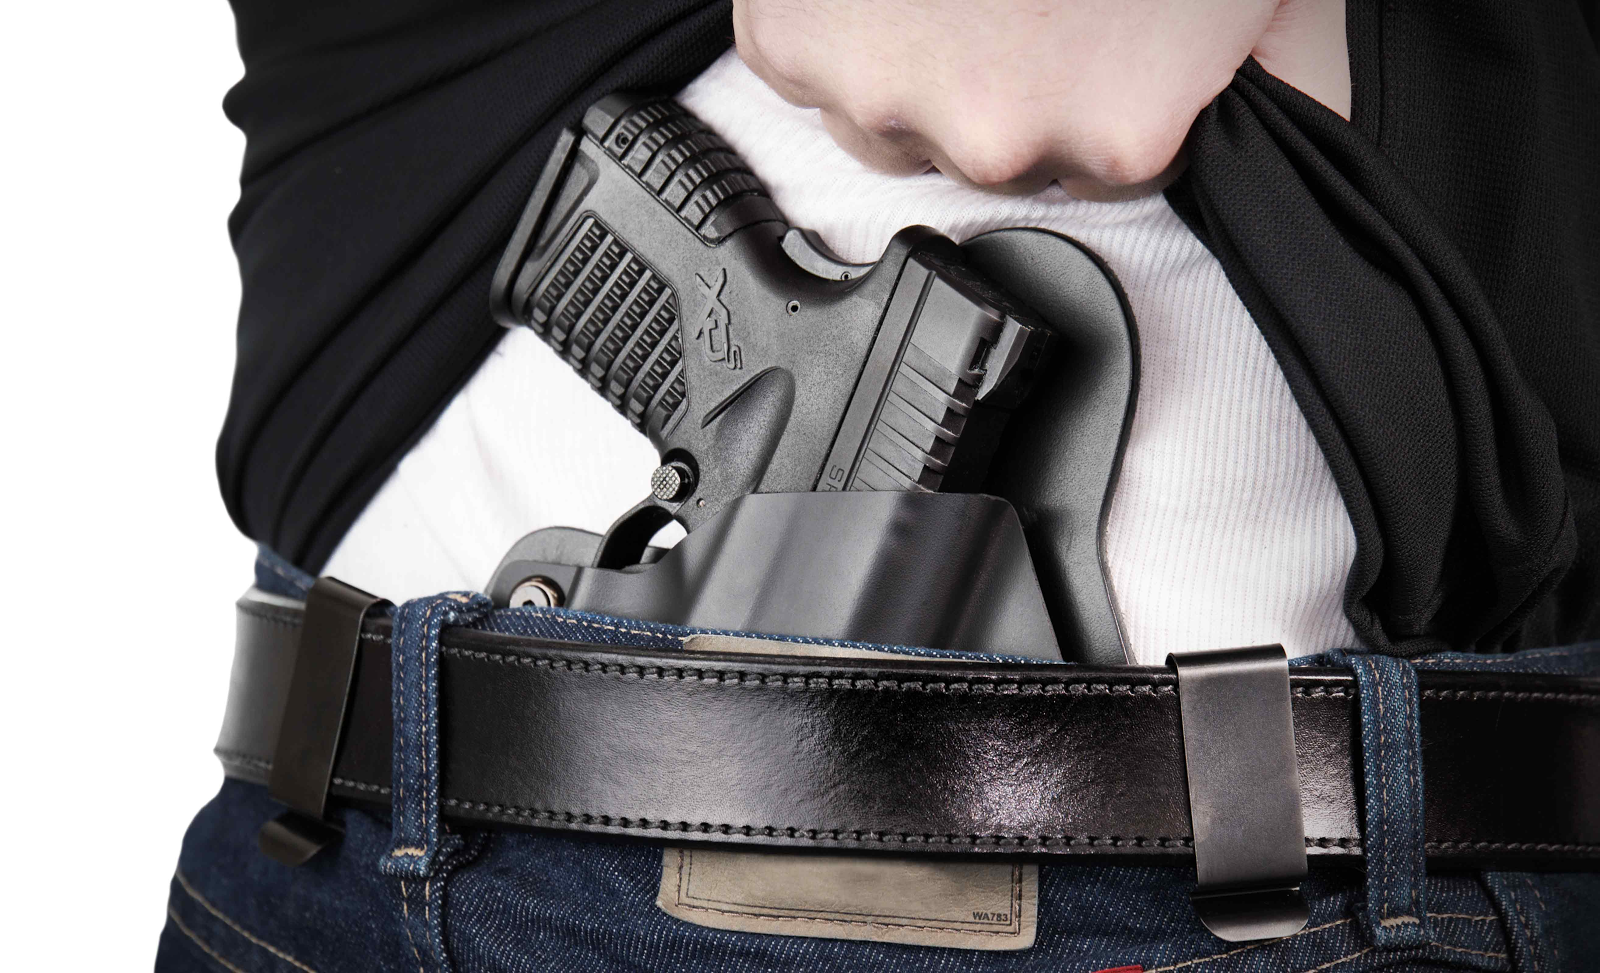 conceal to open carry Self defense act unit issues licenses to carry a weapon in the state of oklahoma effective november 1, 2012, license holders can legally carry their handguns in a concealed or unconcealed manner.